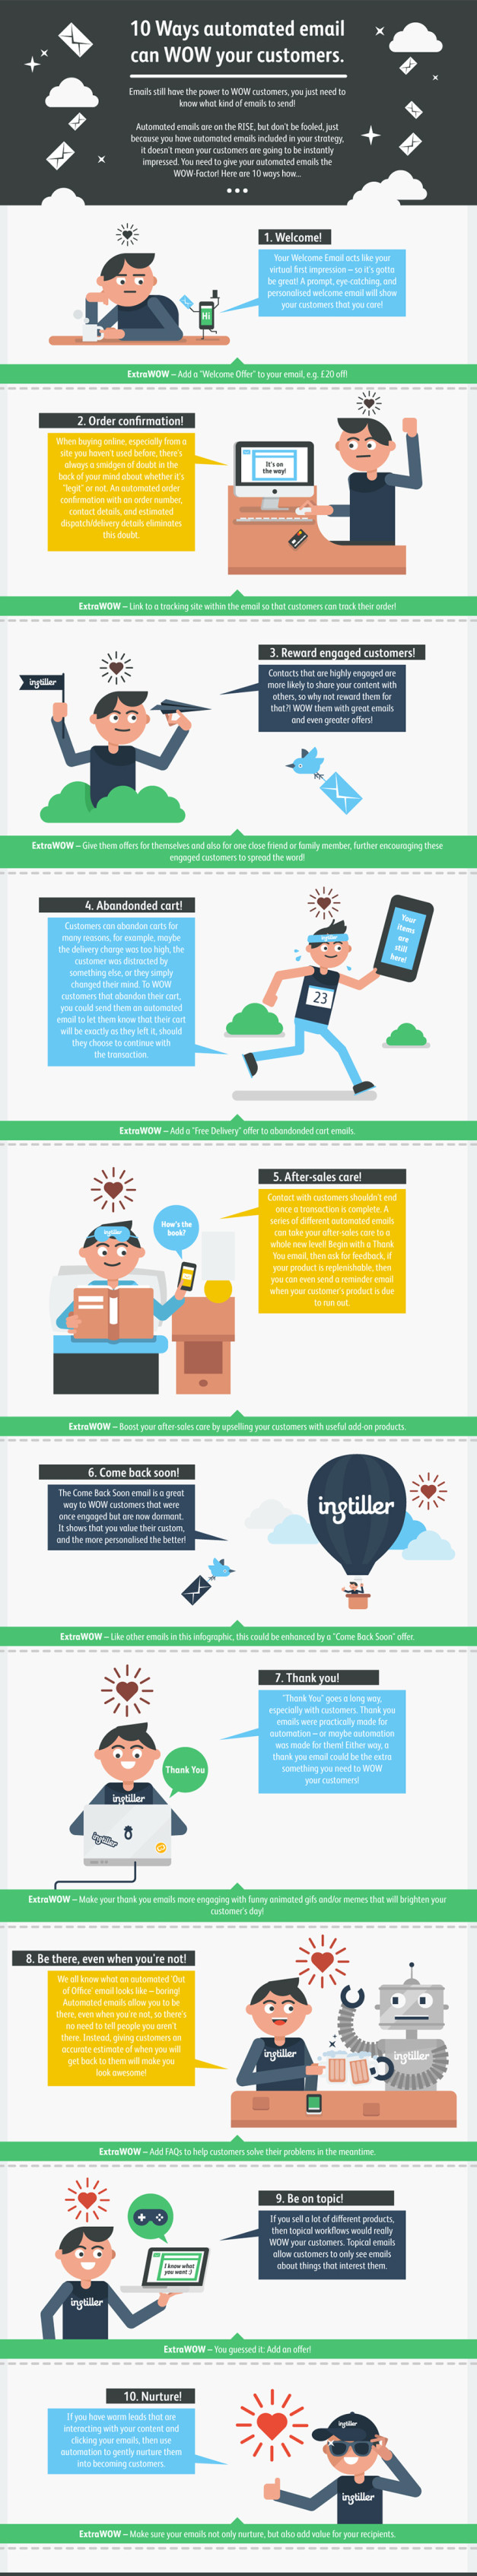 10-ways-to-wow-your-customers-with-automated-emails1